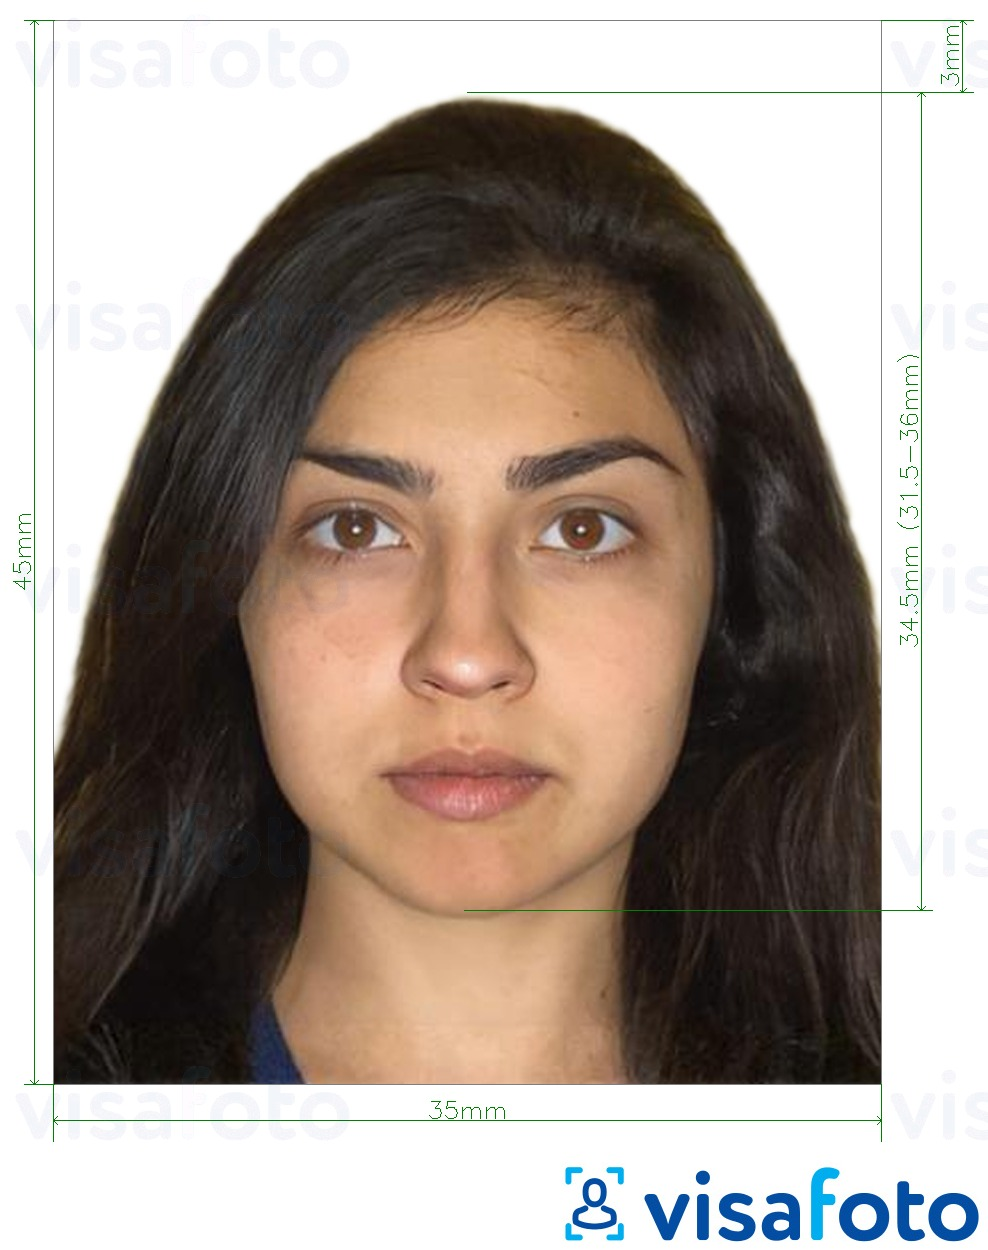 Example of photo for Bangladesh passport application 45x35 mm (4.5x3.5 cm) with exact size specification